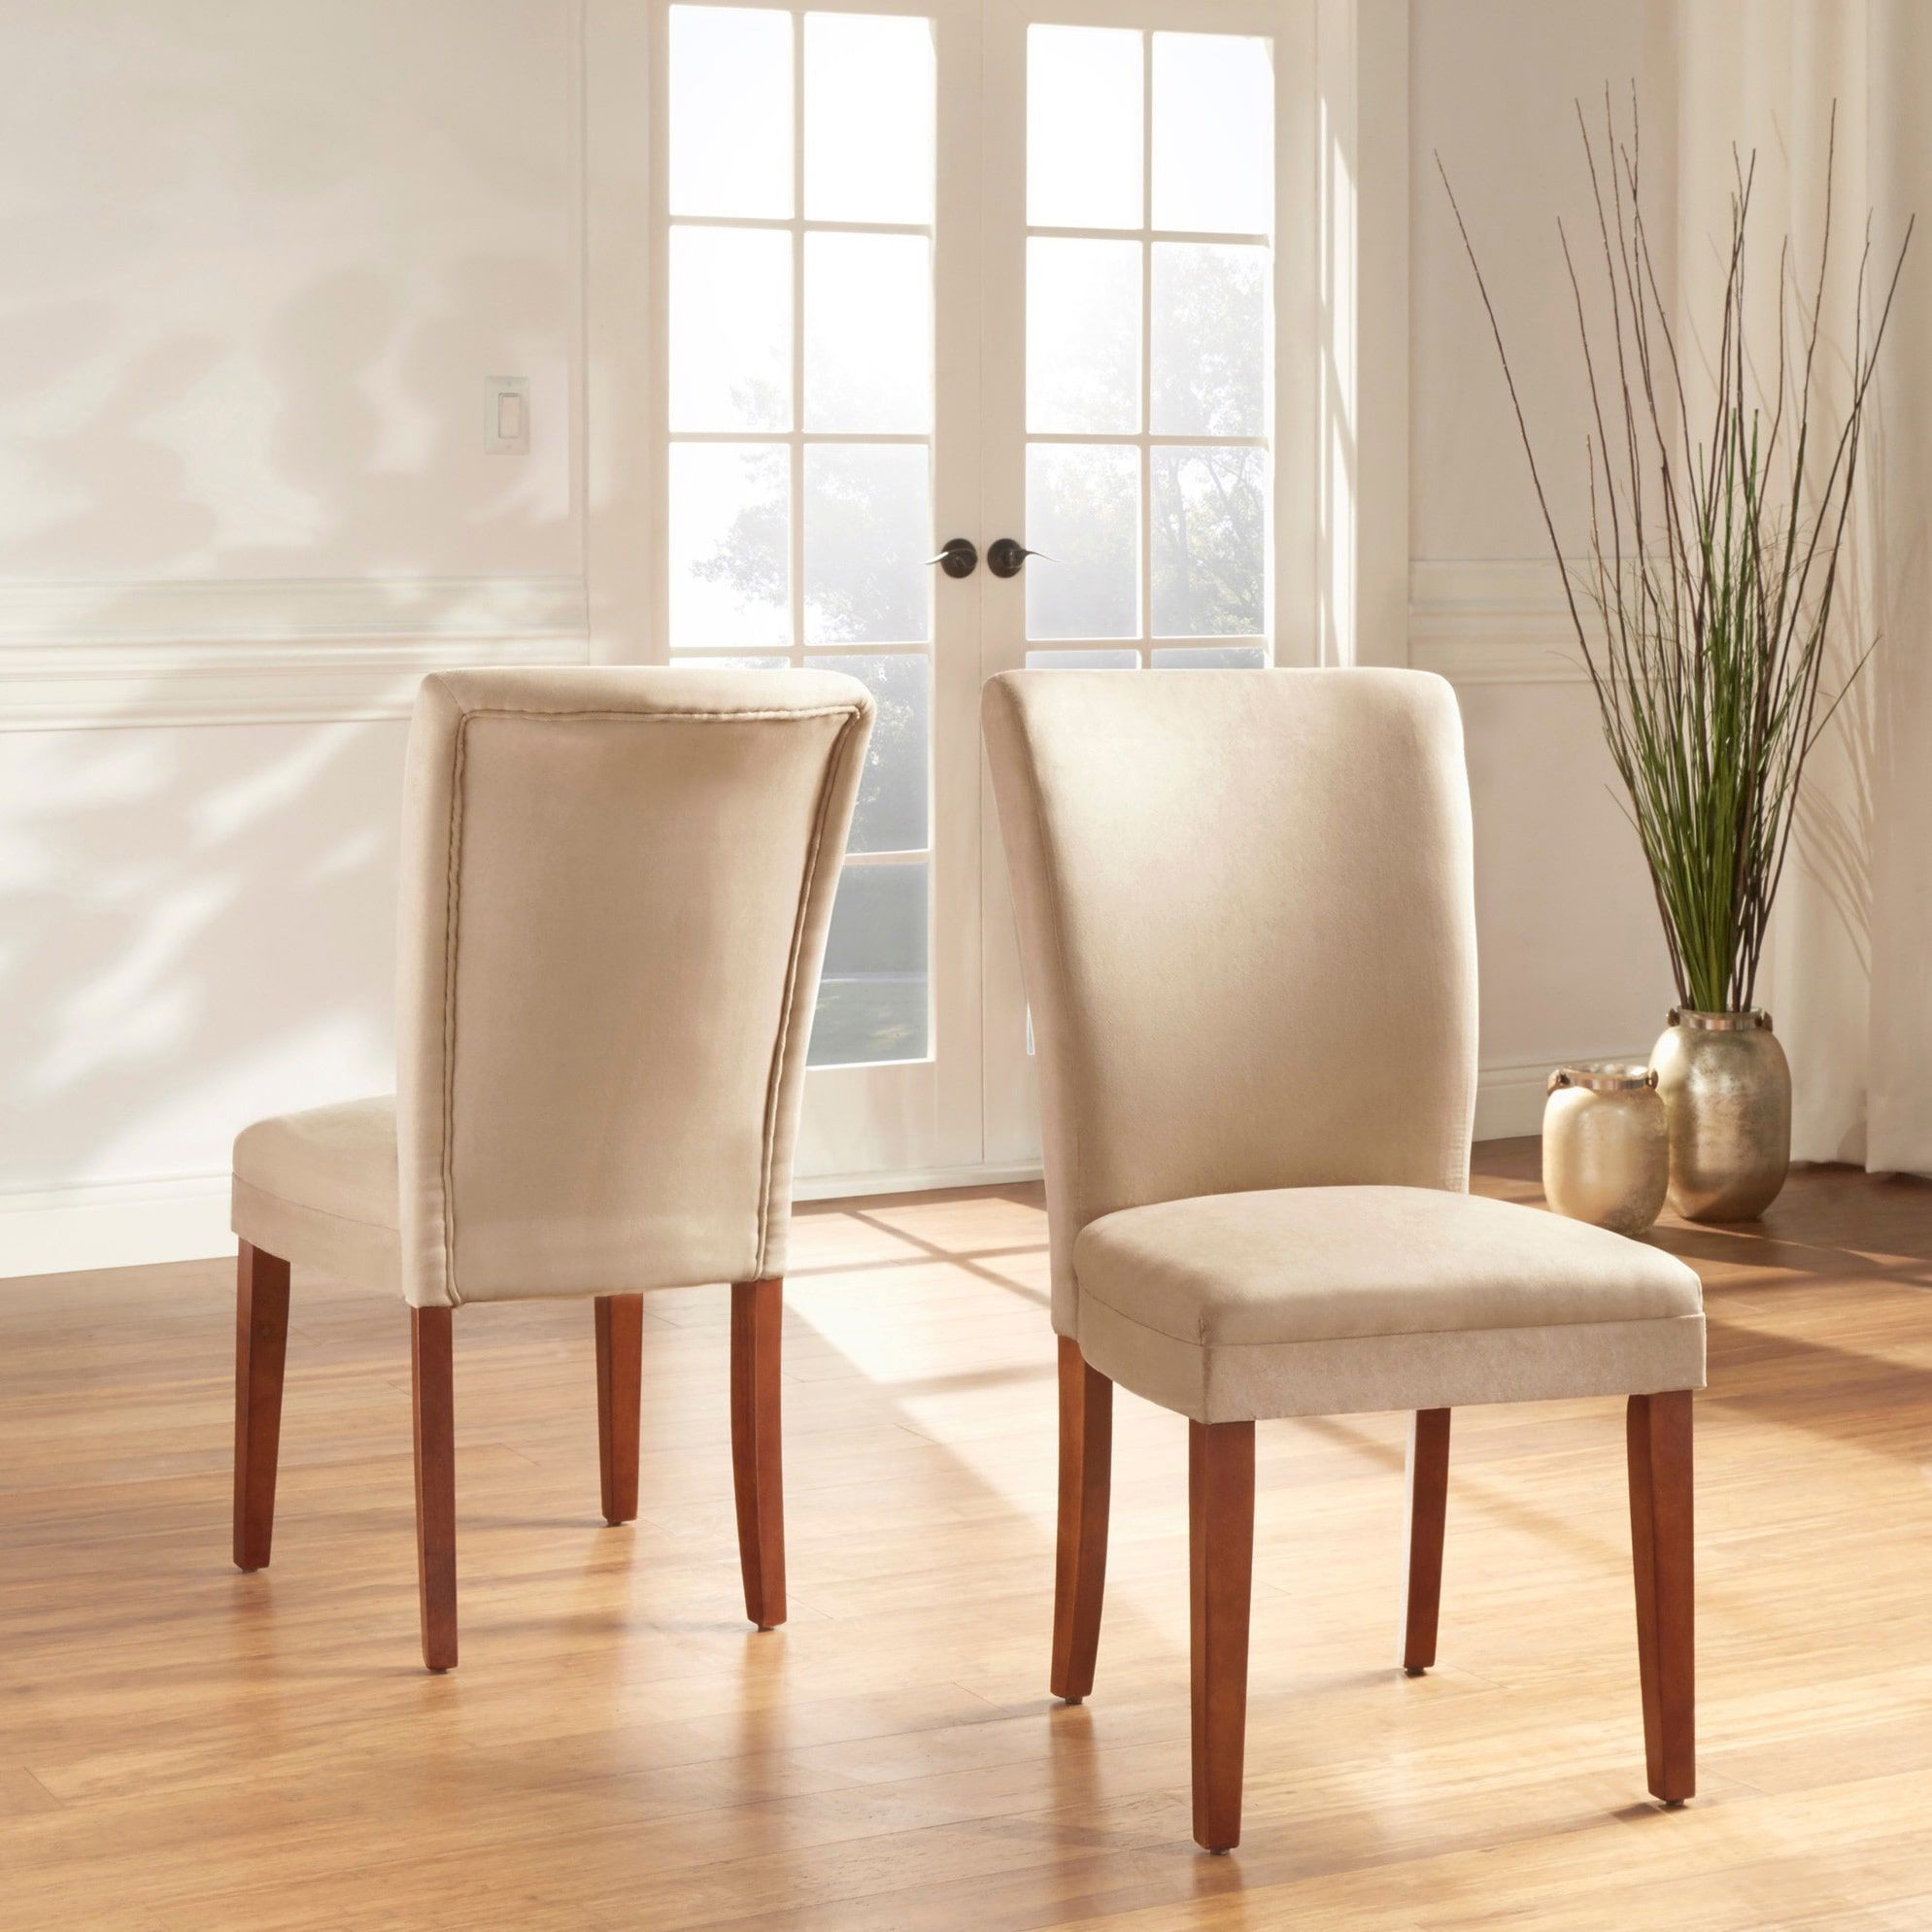 Parson Classic Upholstered Dining Chair (Set of 2) by iNSPIRE Q Bold (Light